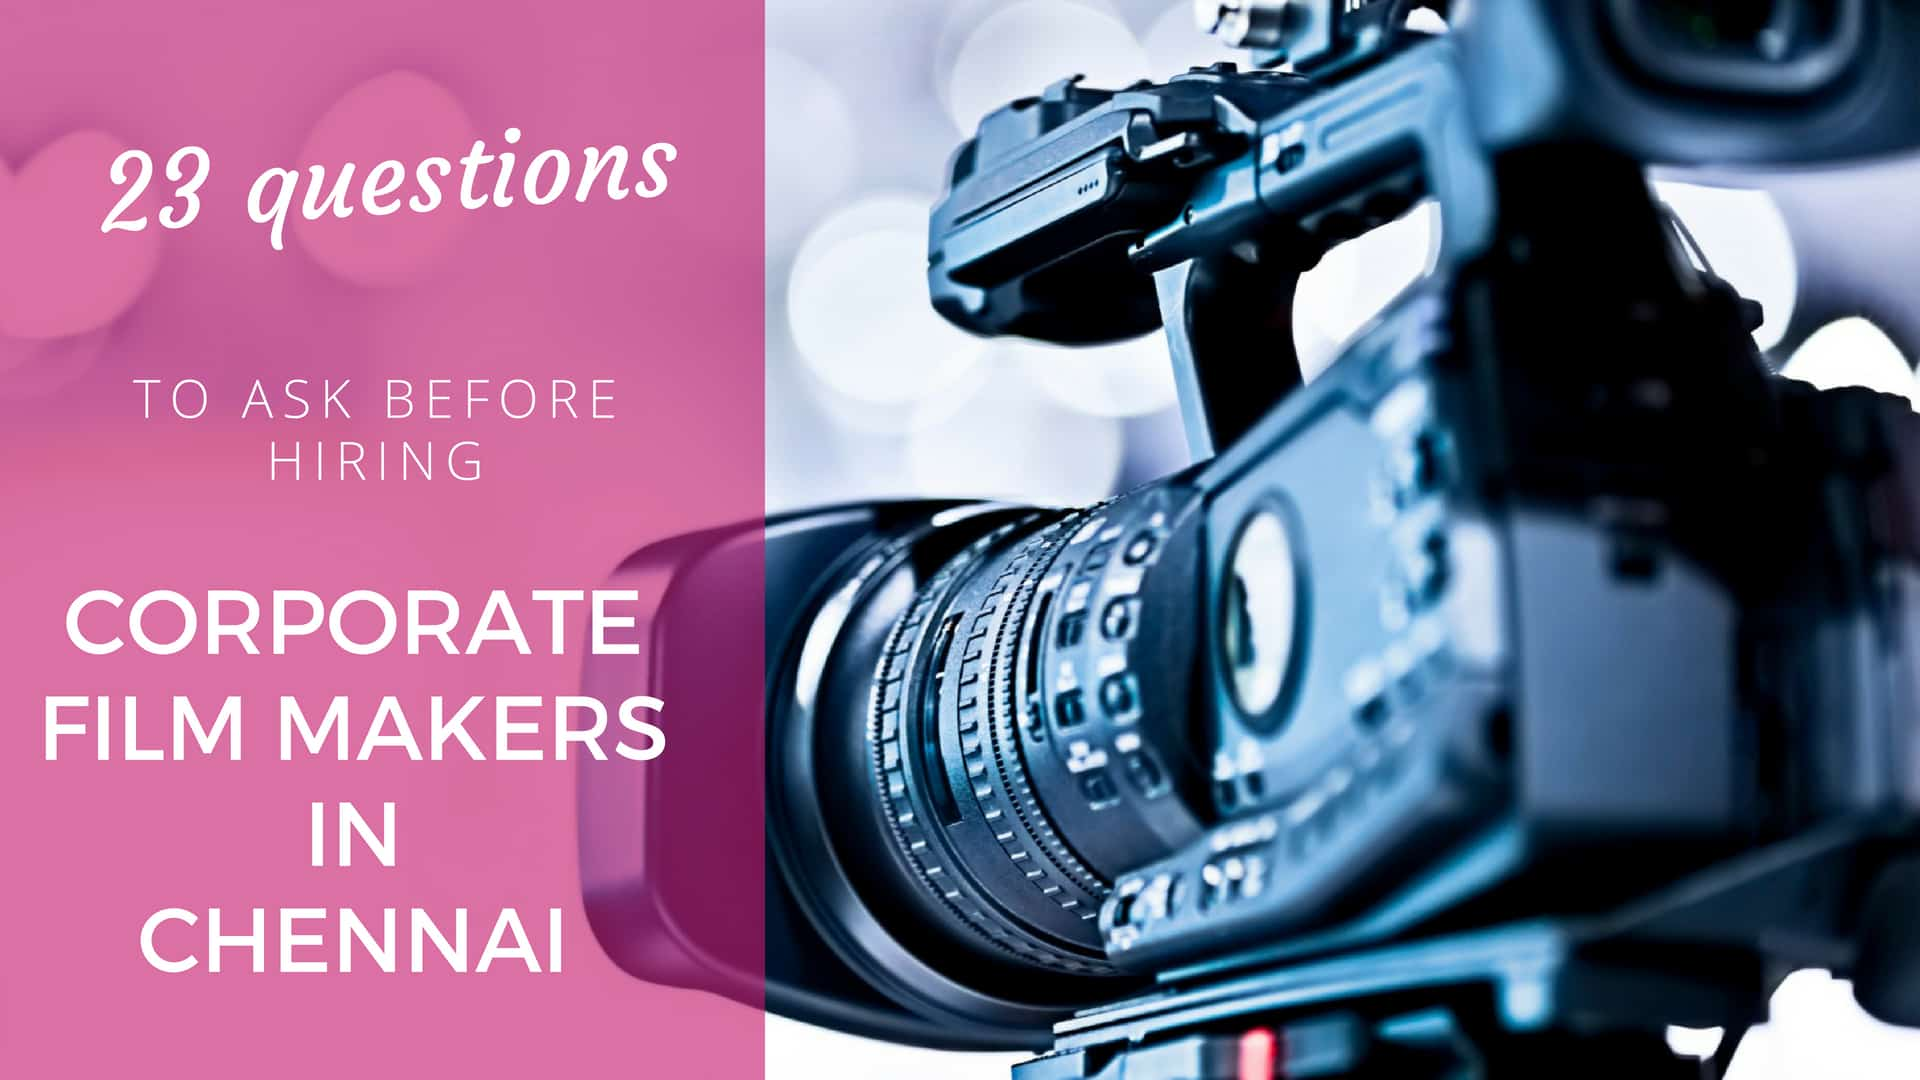 23 Questions to Ask Before Hiring Corporate Film Makers in Chennai